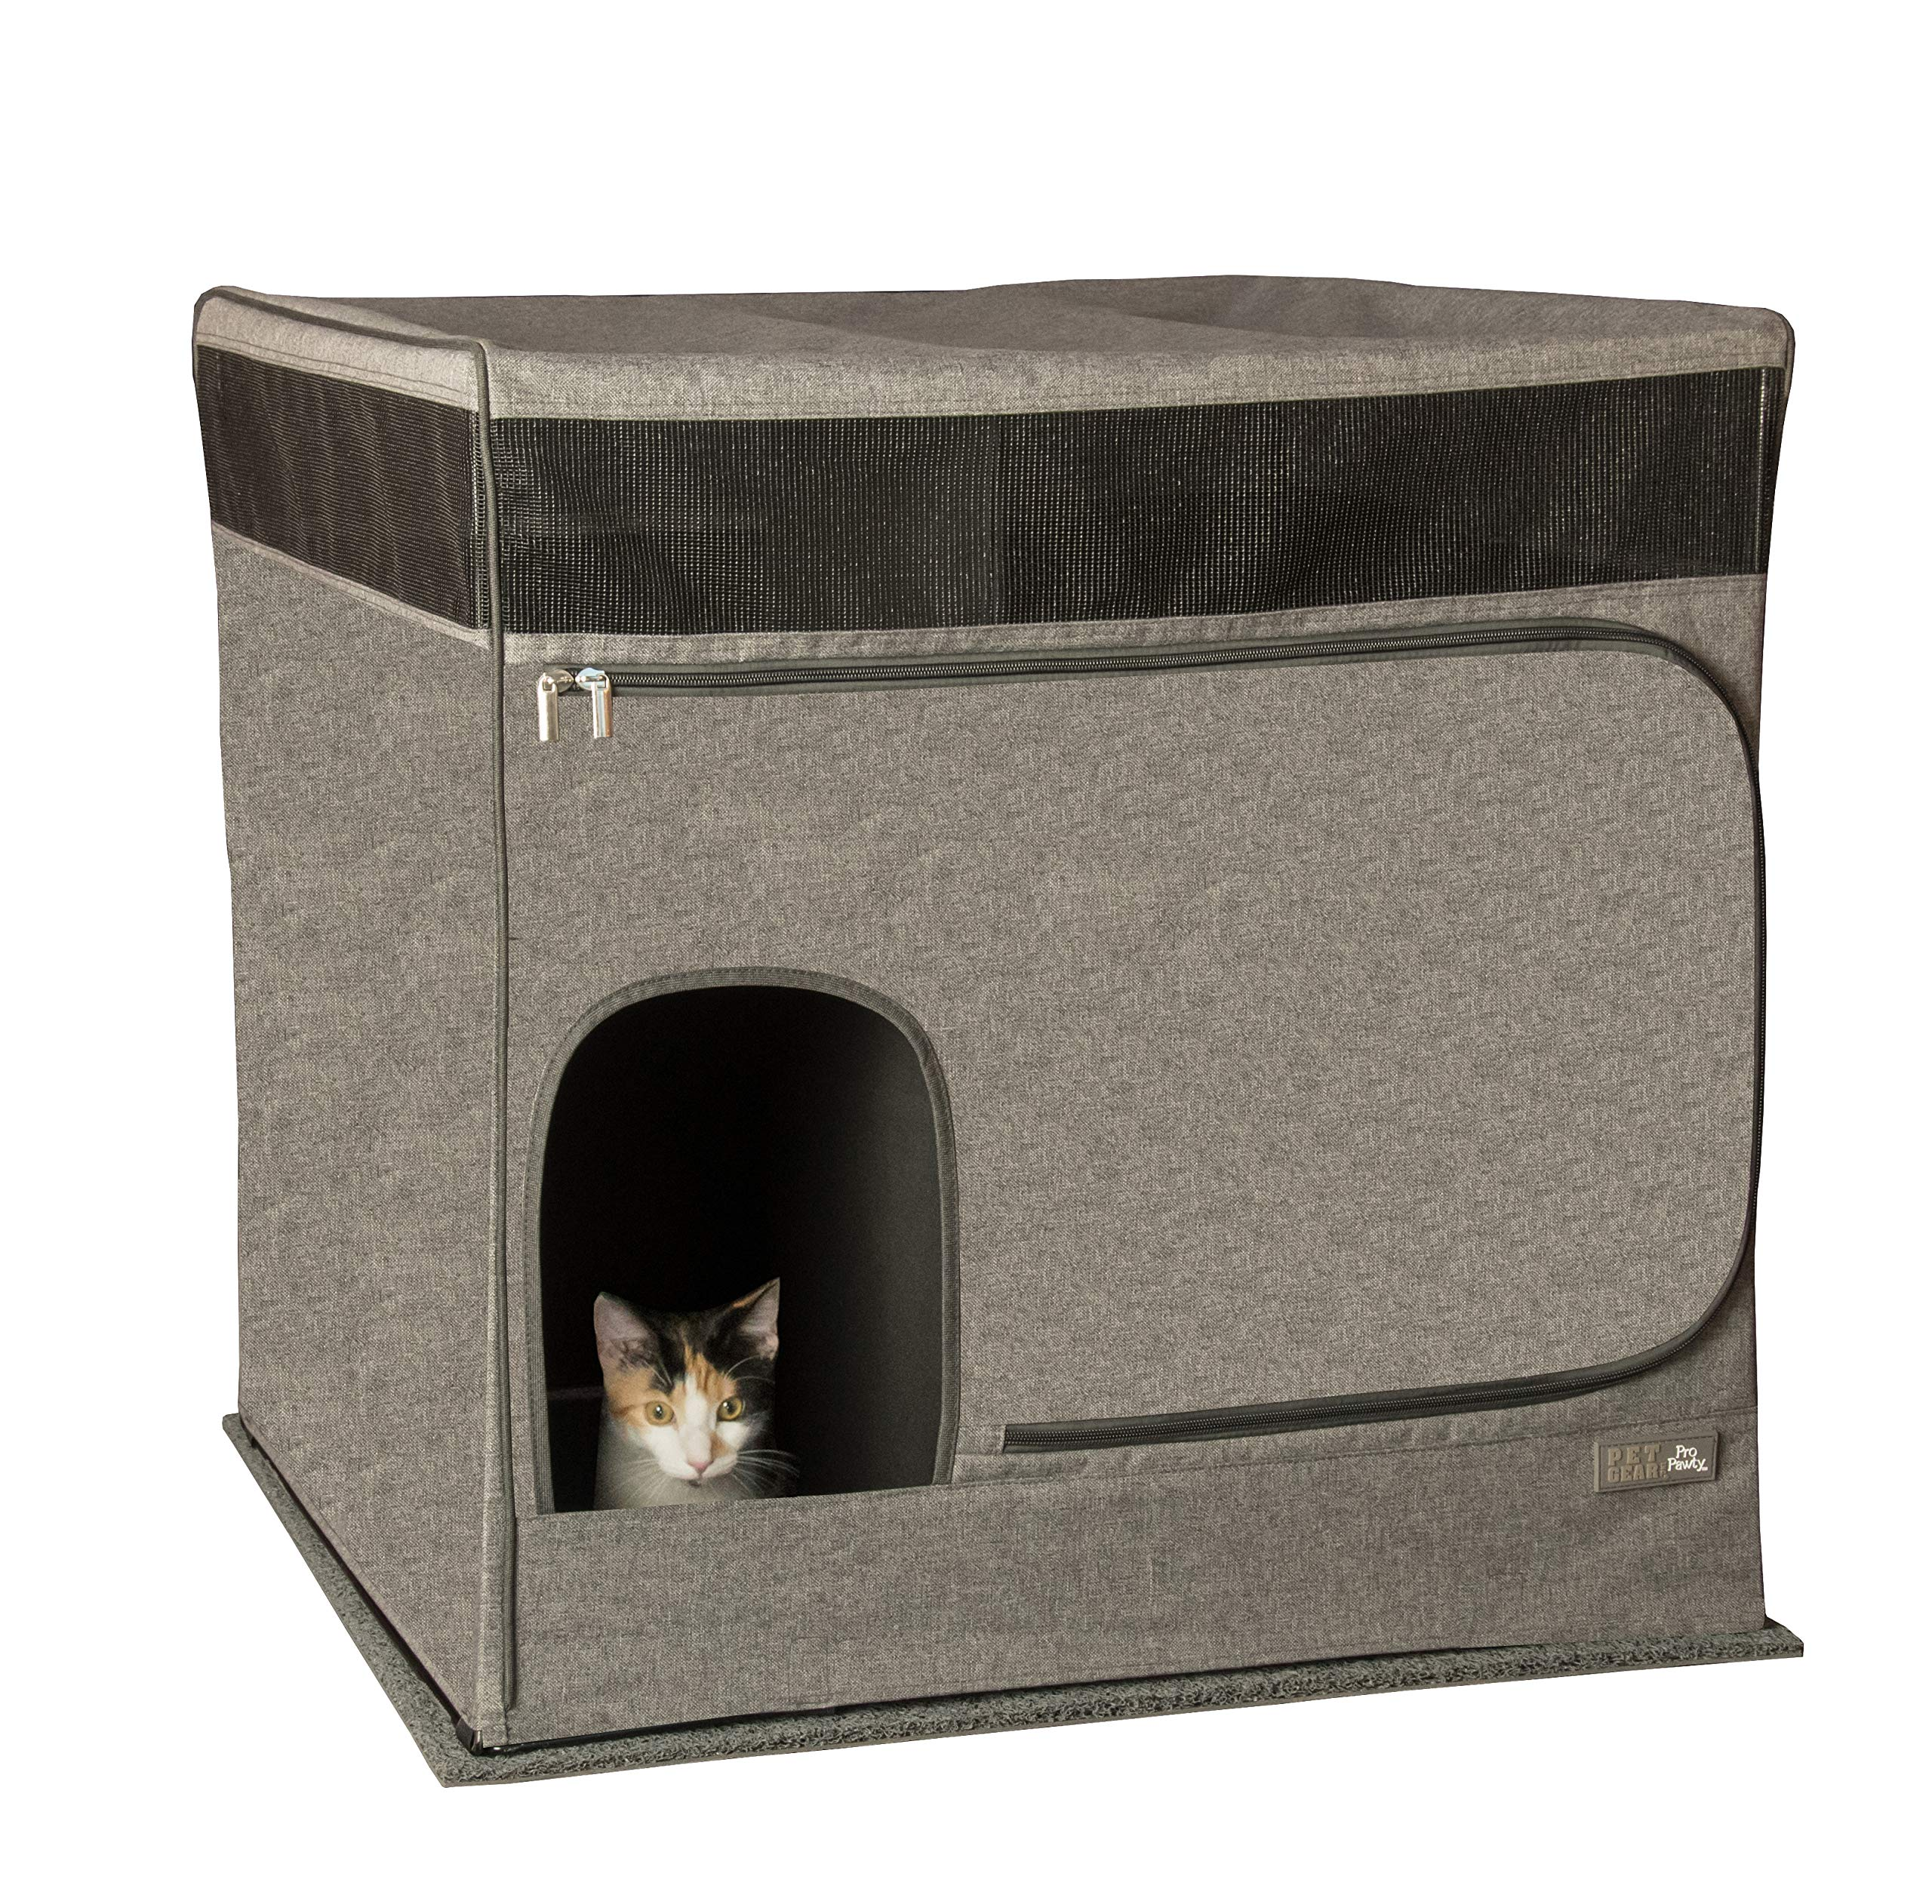 Pet Gear Pro Pawty for Cats with LittertraX Mat, Put an end to Scattered Litter. Box not incl, Soft Charcoal by Pet Gear